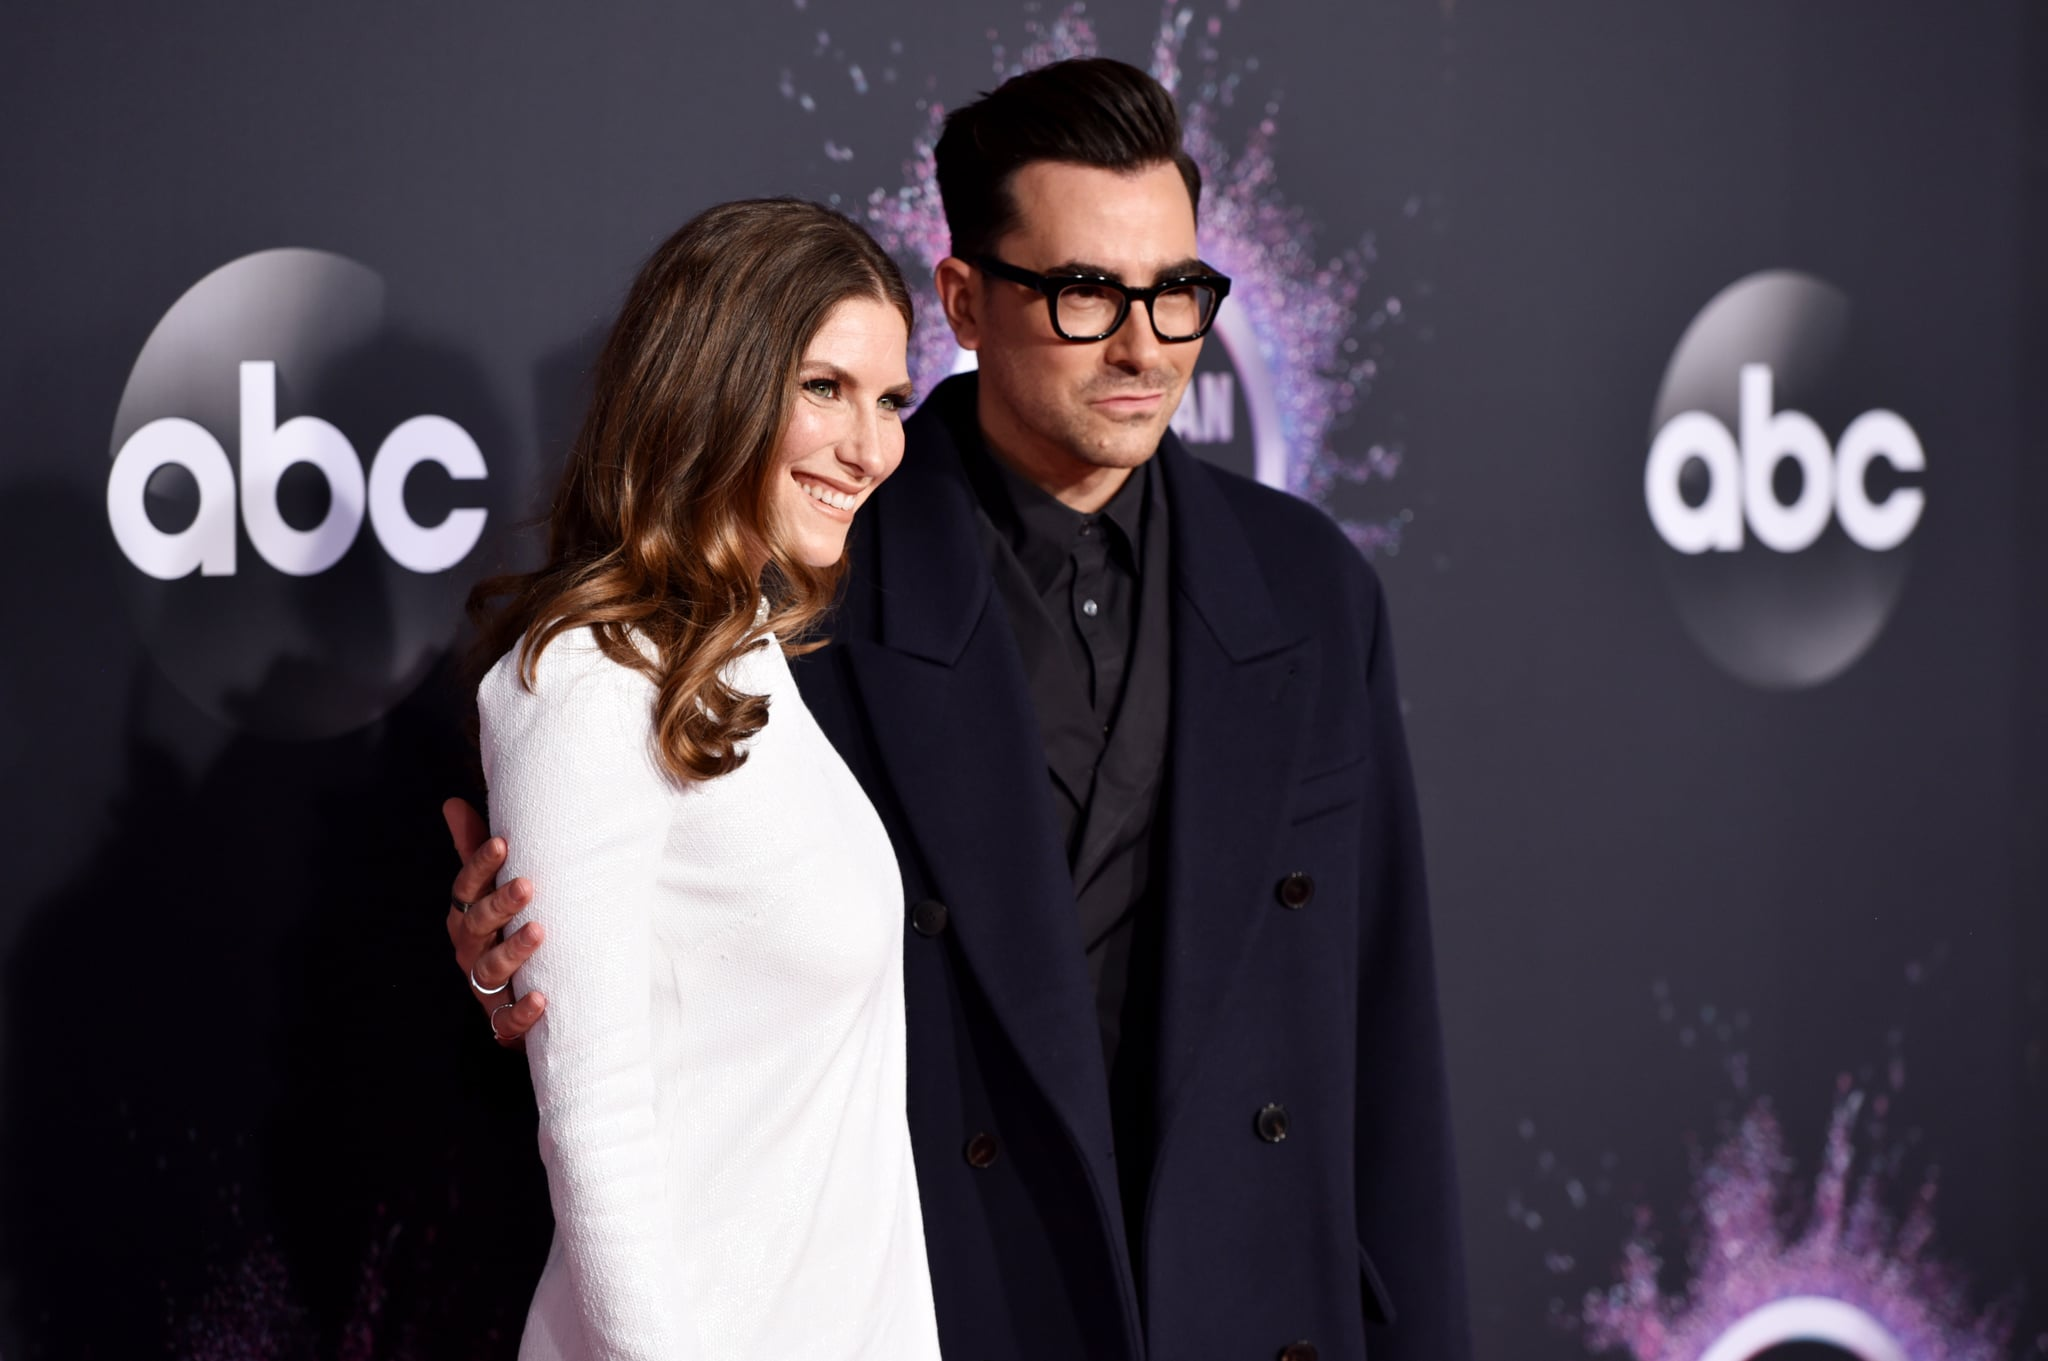 LOS ANGELES, CALIFORNIA - NOVEMBER 24: Sarah Levy and Dan Levy attend the 2019 American Music Awards at Microsoft Theatre on November 24, 2019 in Los Angeles, California. (Photo by John Shearer/Getty Images for dcp)